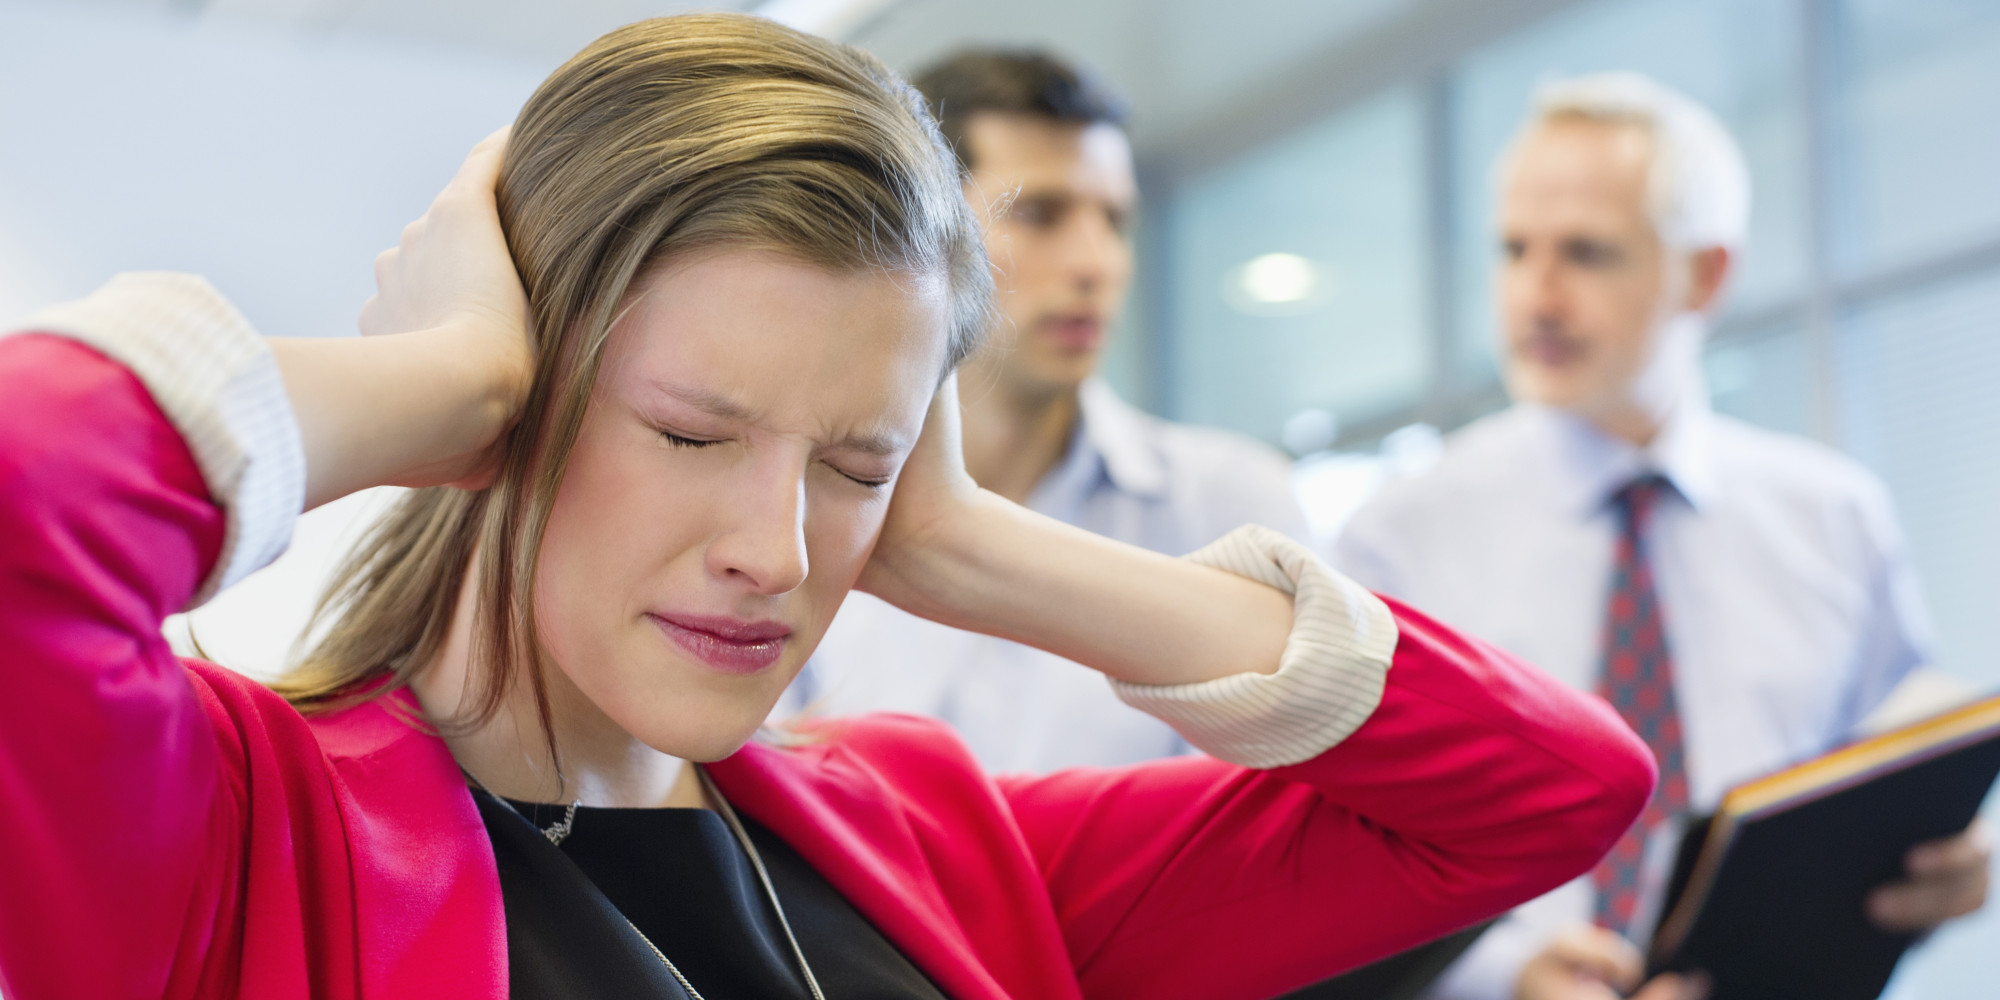 How to respond to nagging colleagues 71